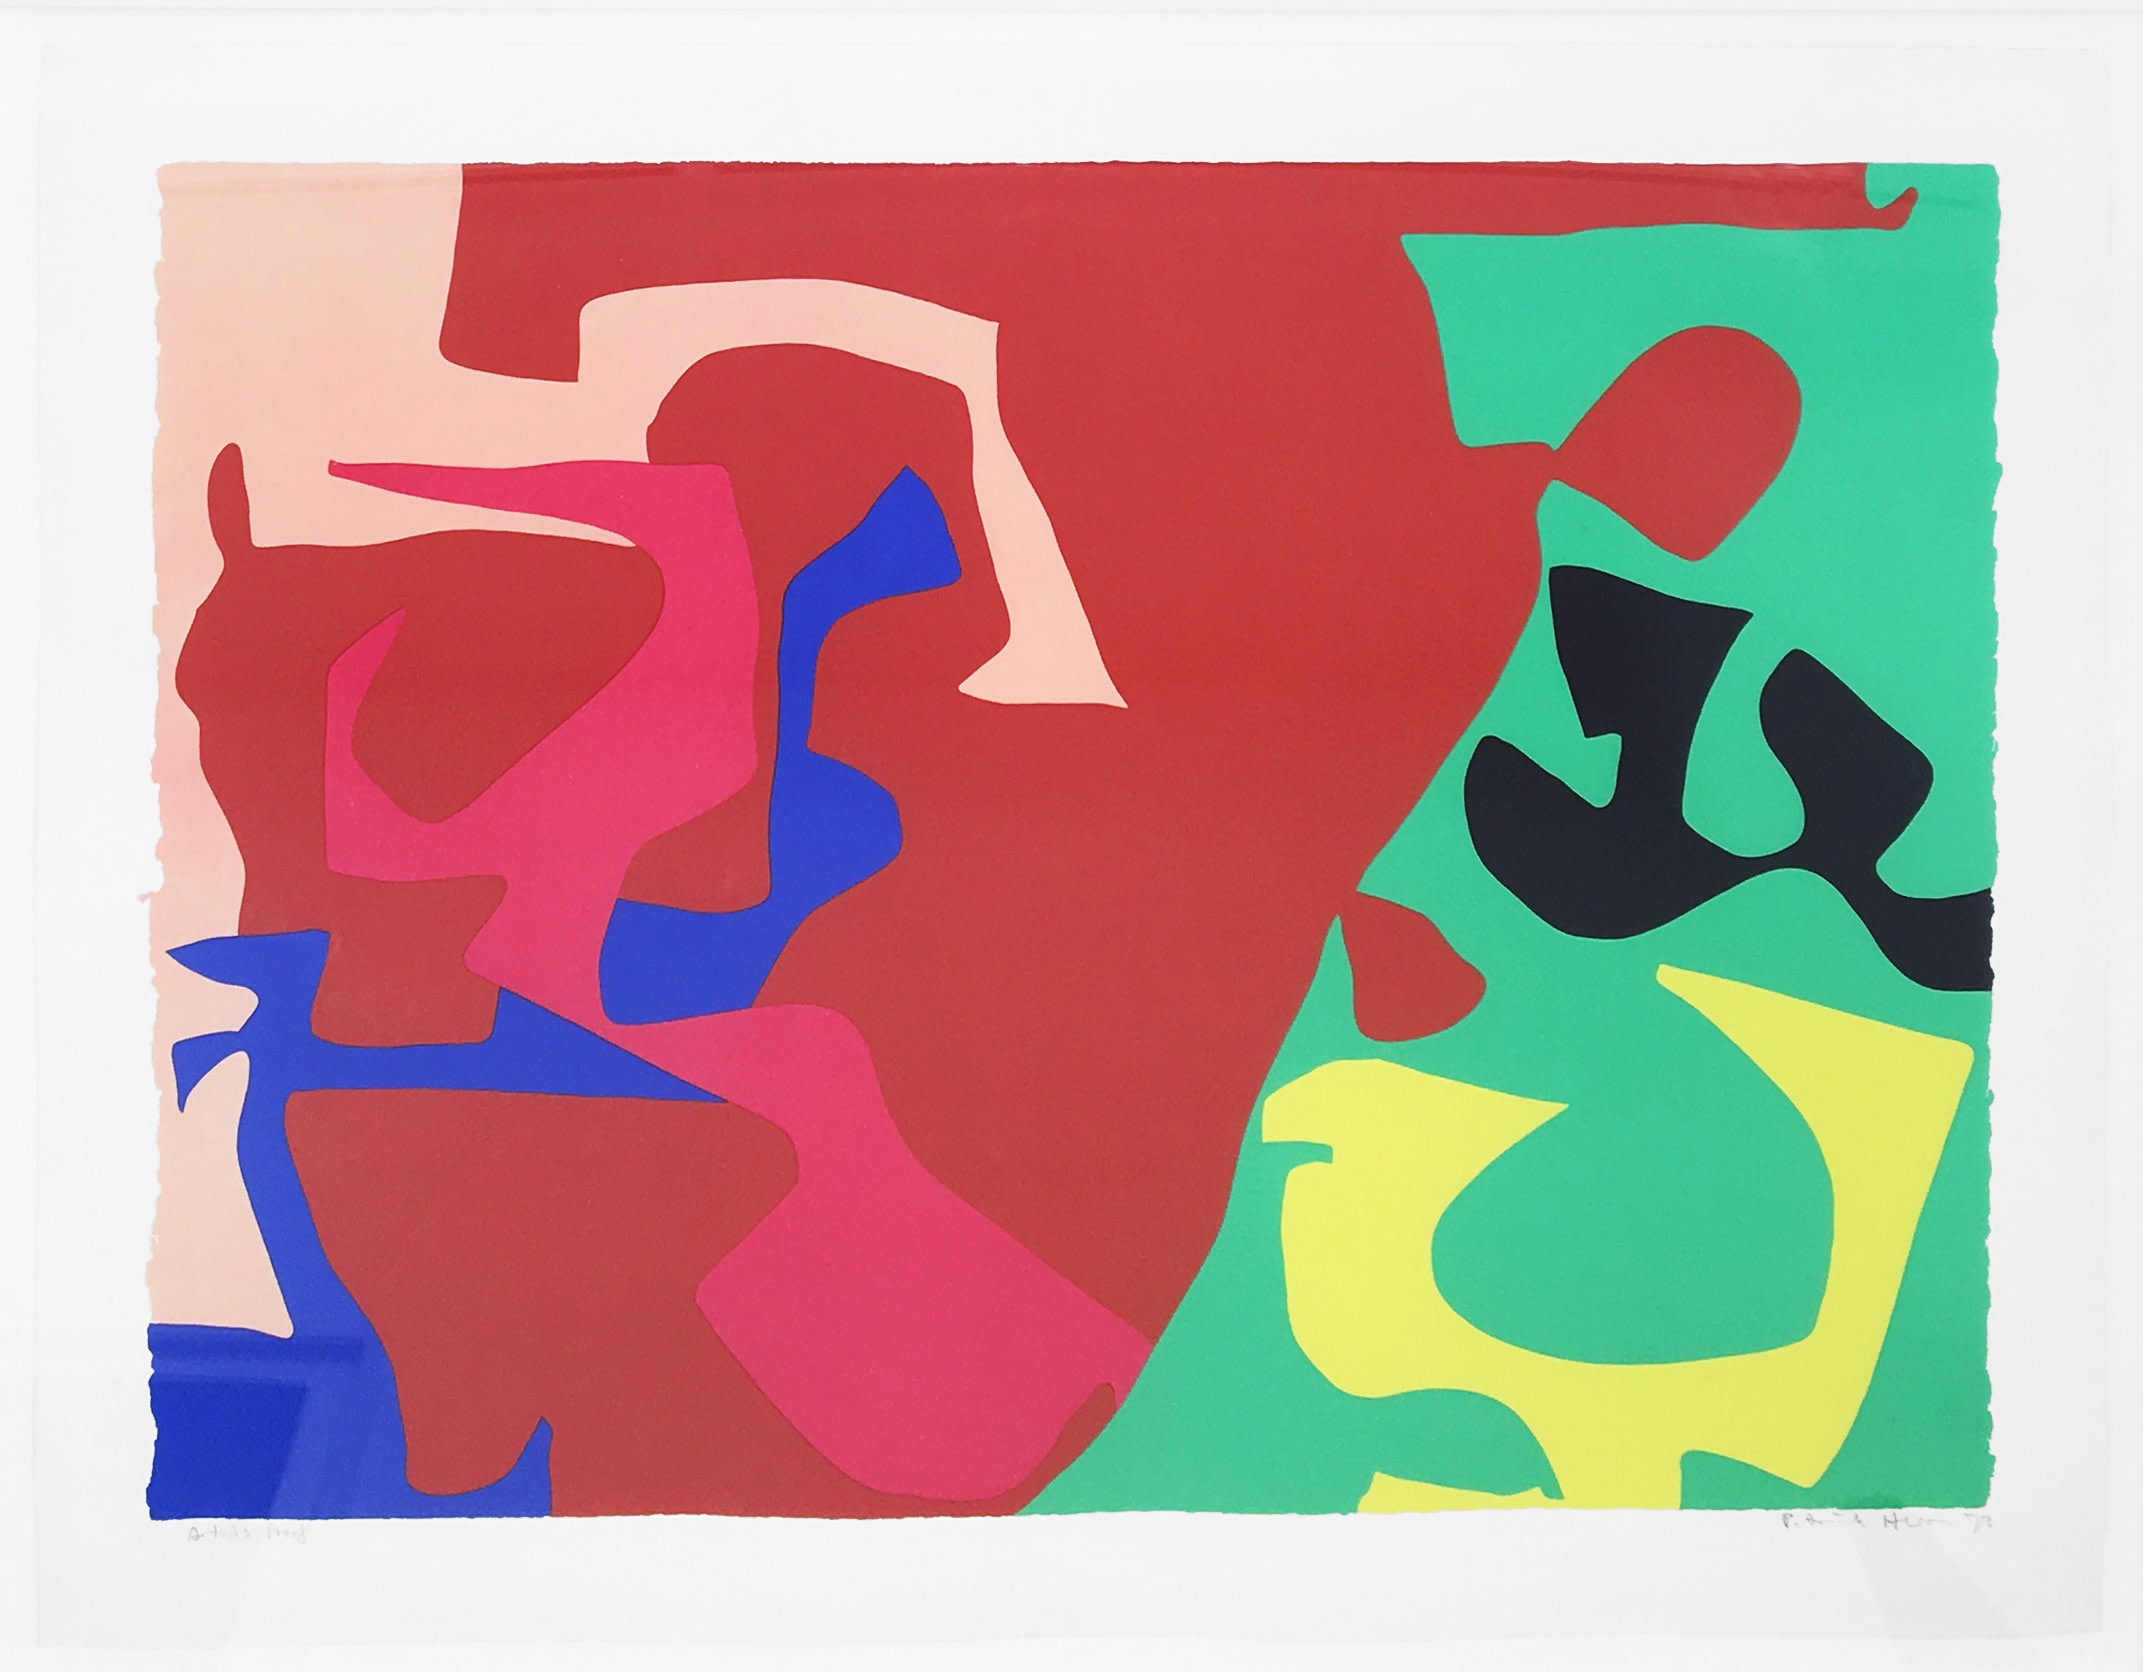 "<span class=""link fancybox-details-link""><a href=""/artists/74-patrick-heron/works/1011/"">View Detail Page</a></span><div class=""artist""><strong>Patrick Heron</strong></div> 1920 - 1999 <div class=""title""><em>January 1973: Plate 7</em>, 1973</div> <div class=""signed_and_dated"">signed and dated in pencil, verso is the publishers stamp<br /> from the edition of 72</div> <div class=""medium"">screenprint</div> <div class=""dimensions"">58.6 x 81.4cm</div>"